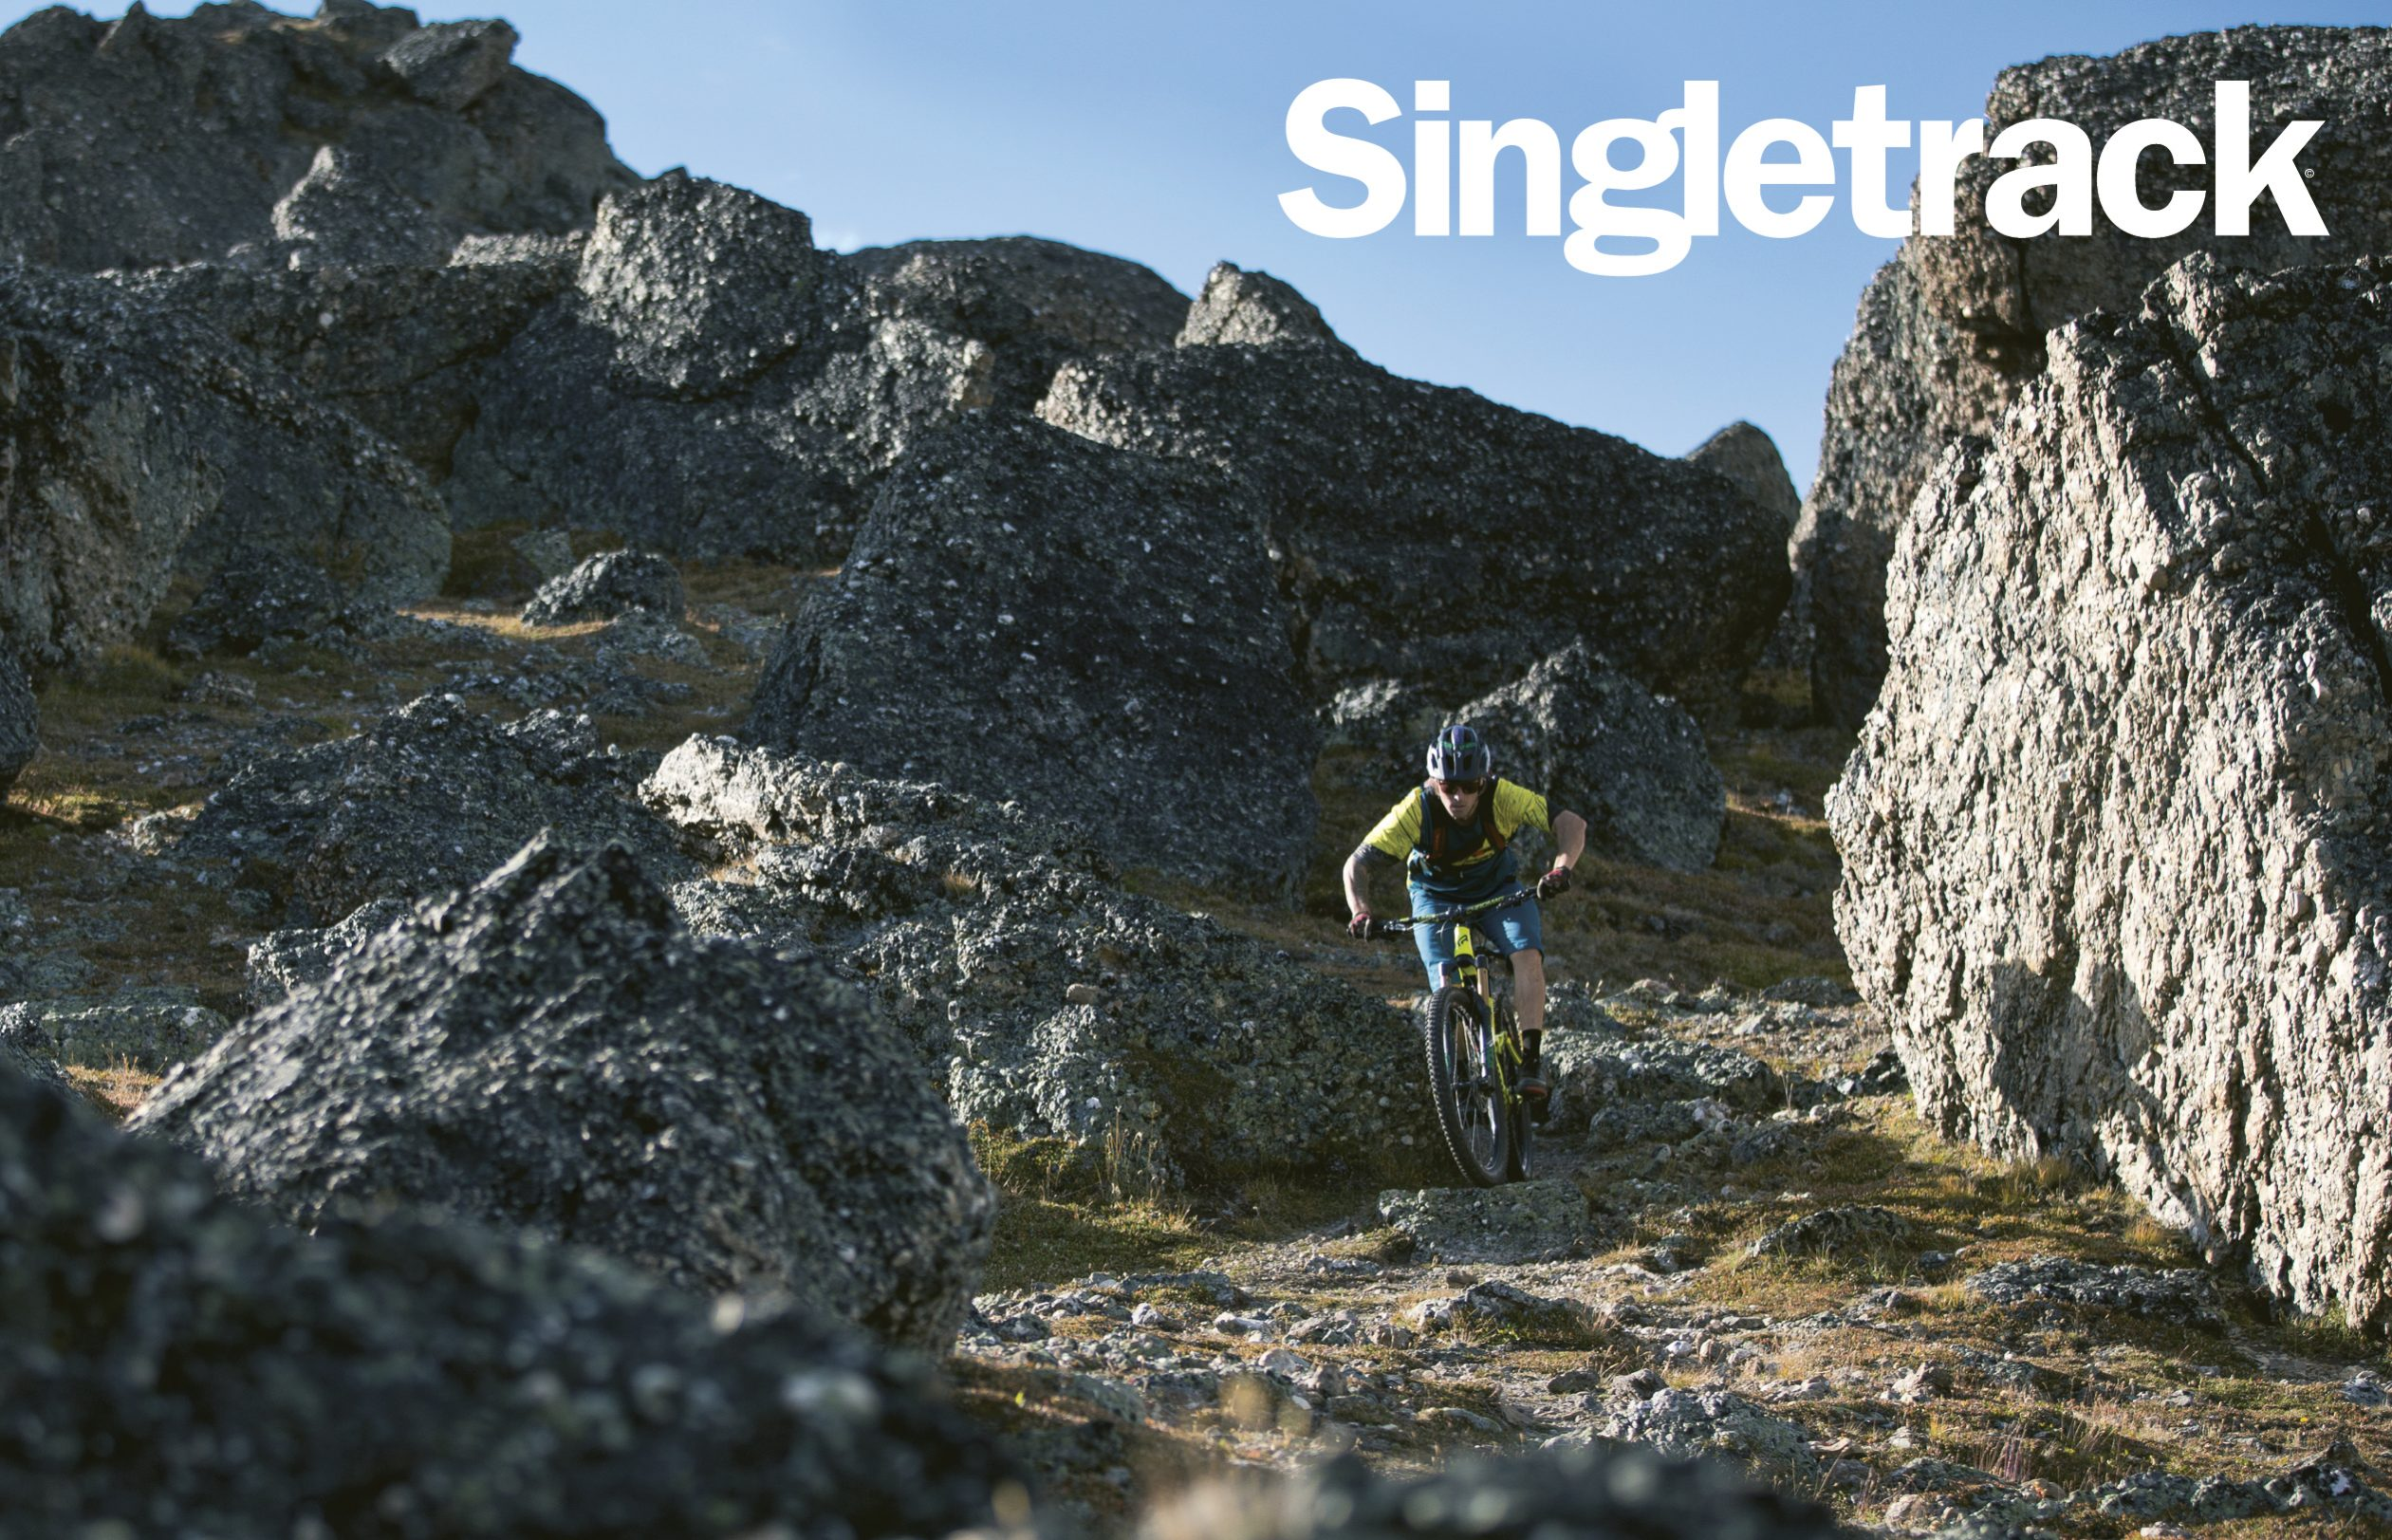 singletrack 109 cover shot rocks canada